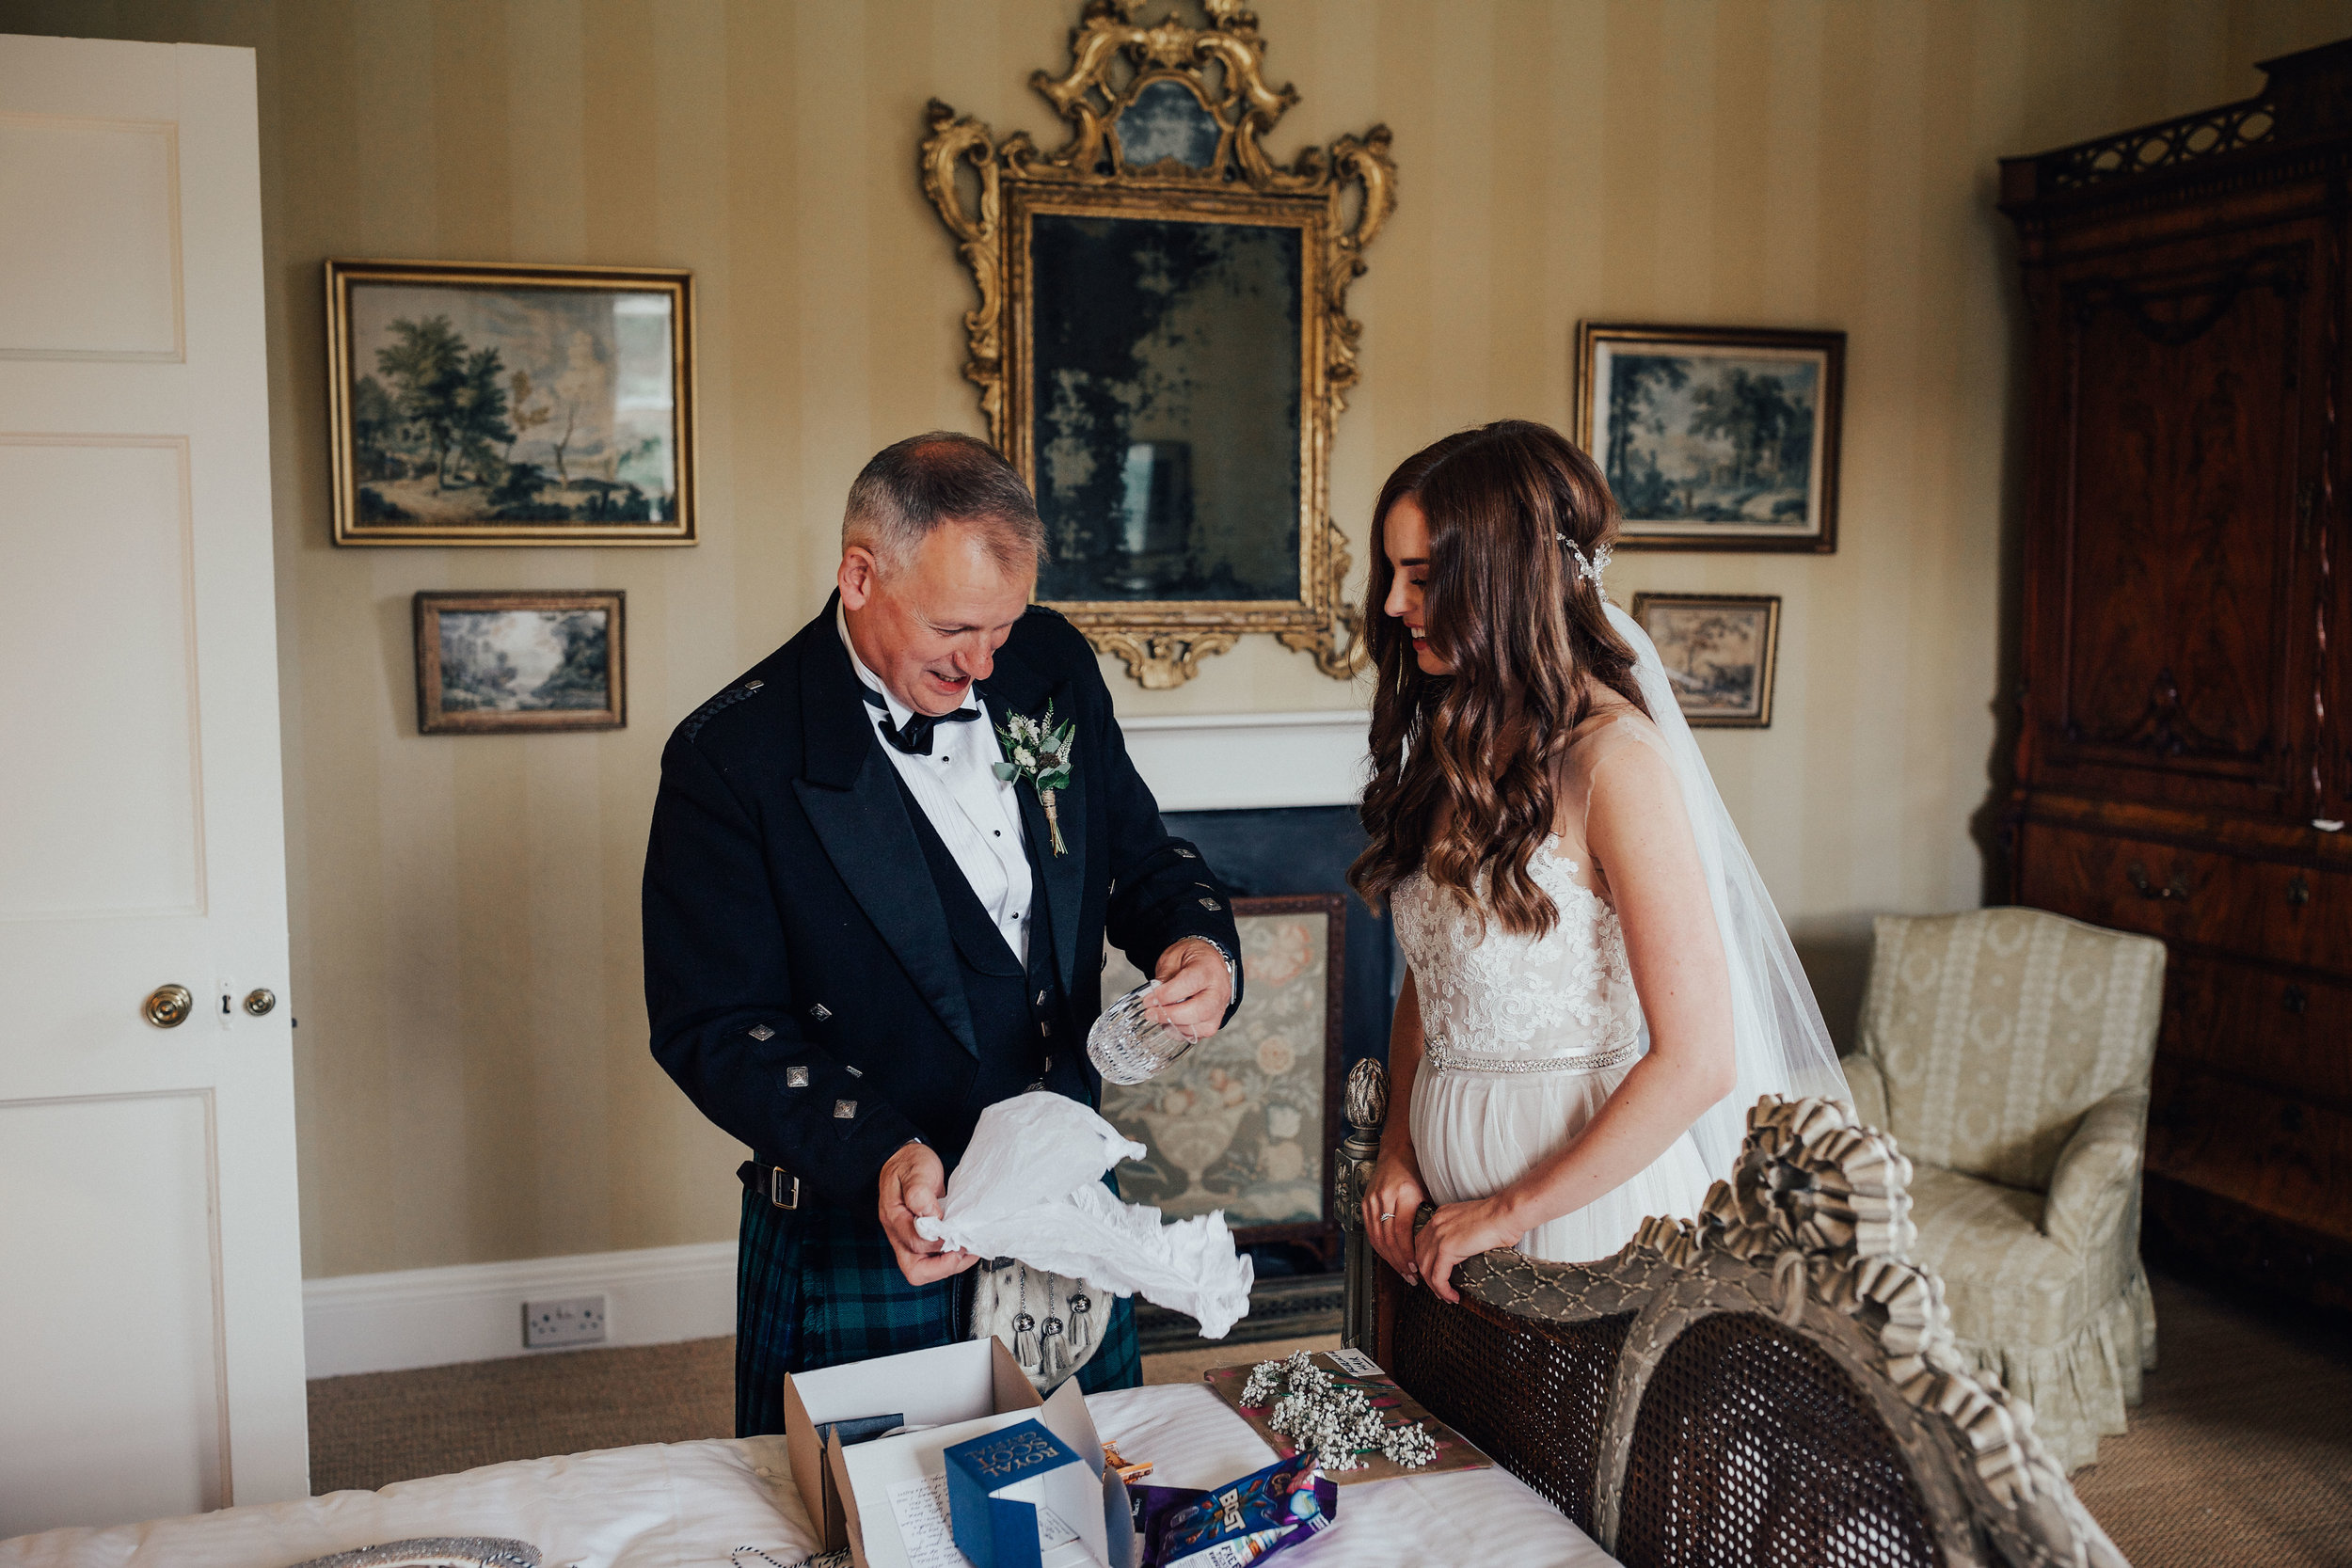 BYRE_AT_INCHYRA_WEDDING_PHOTOGRAPHER_PJ_PHILLIPS_PHOTOGRAPHY_KAYLEIGH_ANDREW_69.jpg